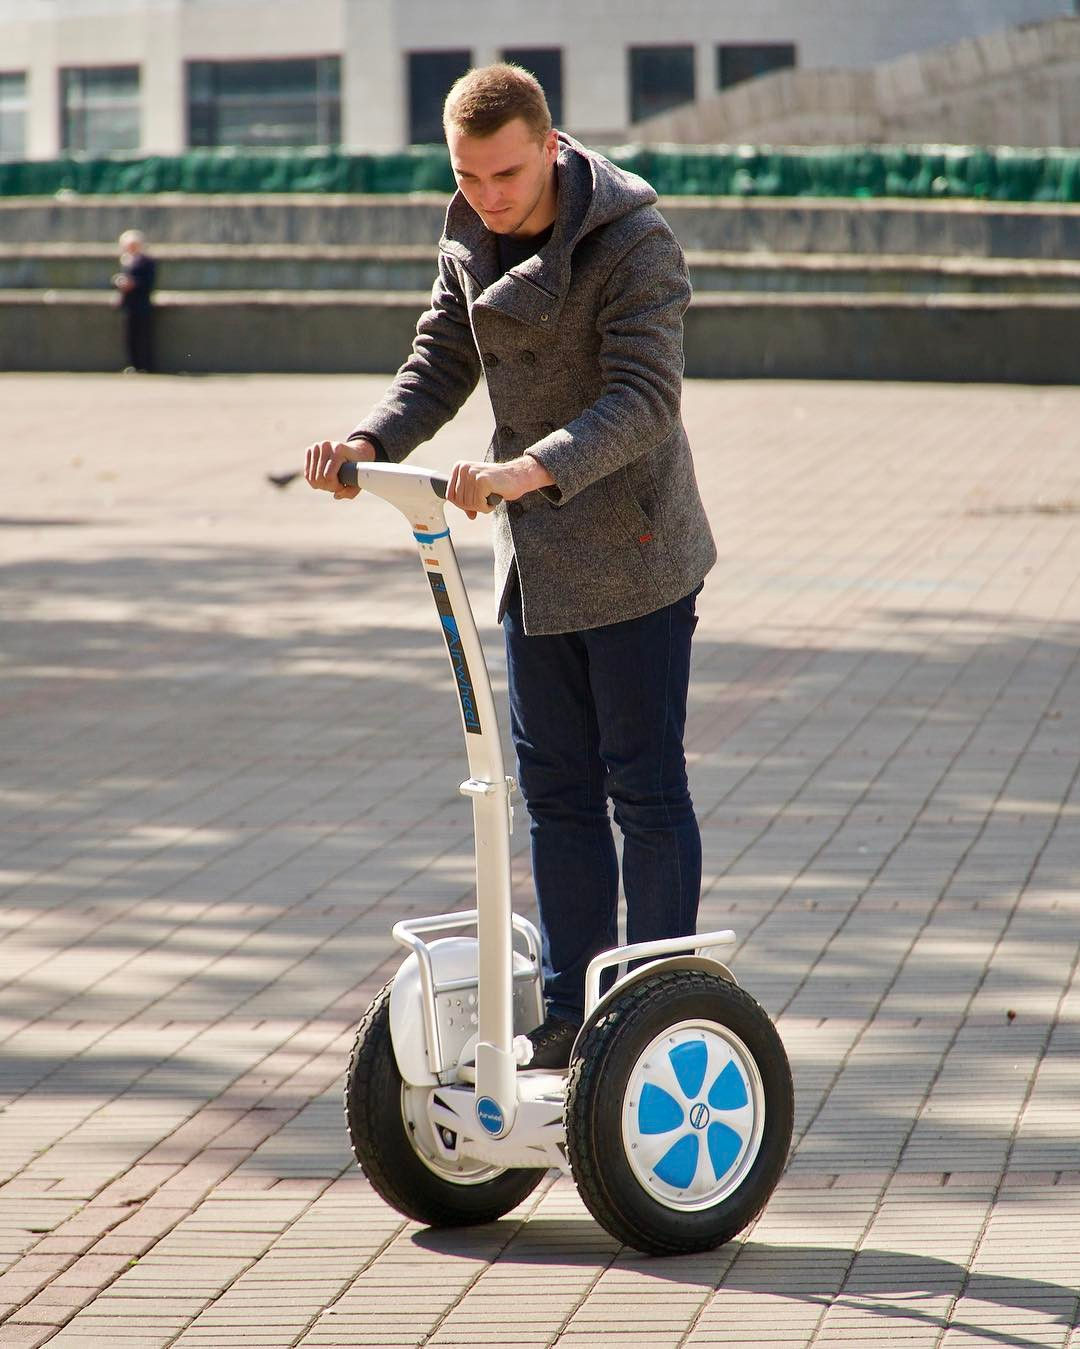 Airwheel-S5-SUV-self-balancing-scooter